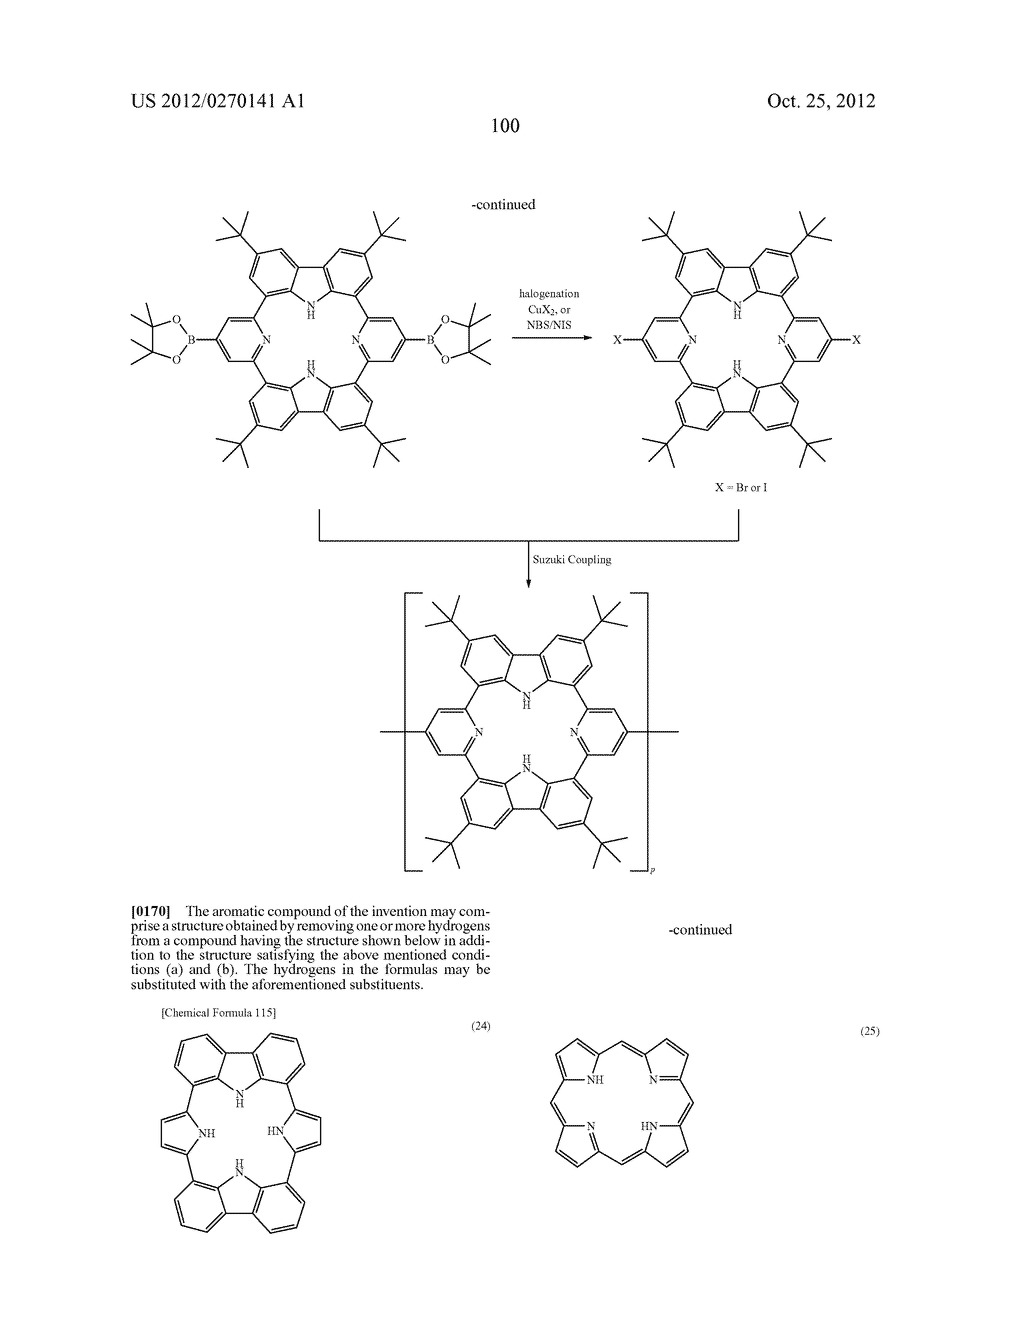 NITROGEN-CONTAINING AROMATIC COMPOUNDS AND METAL COMPLEXES - diagram, schematic, and image 101